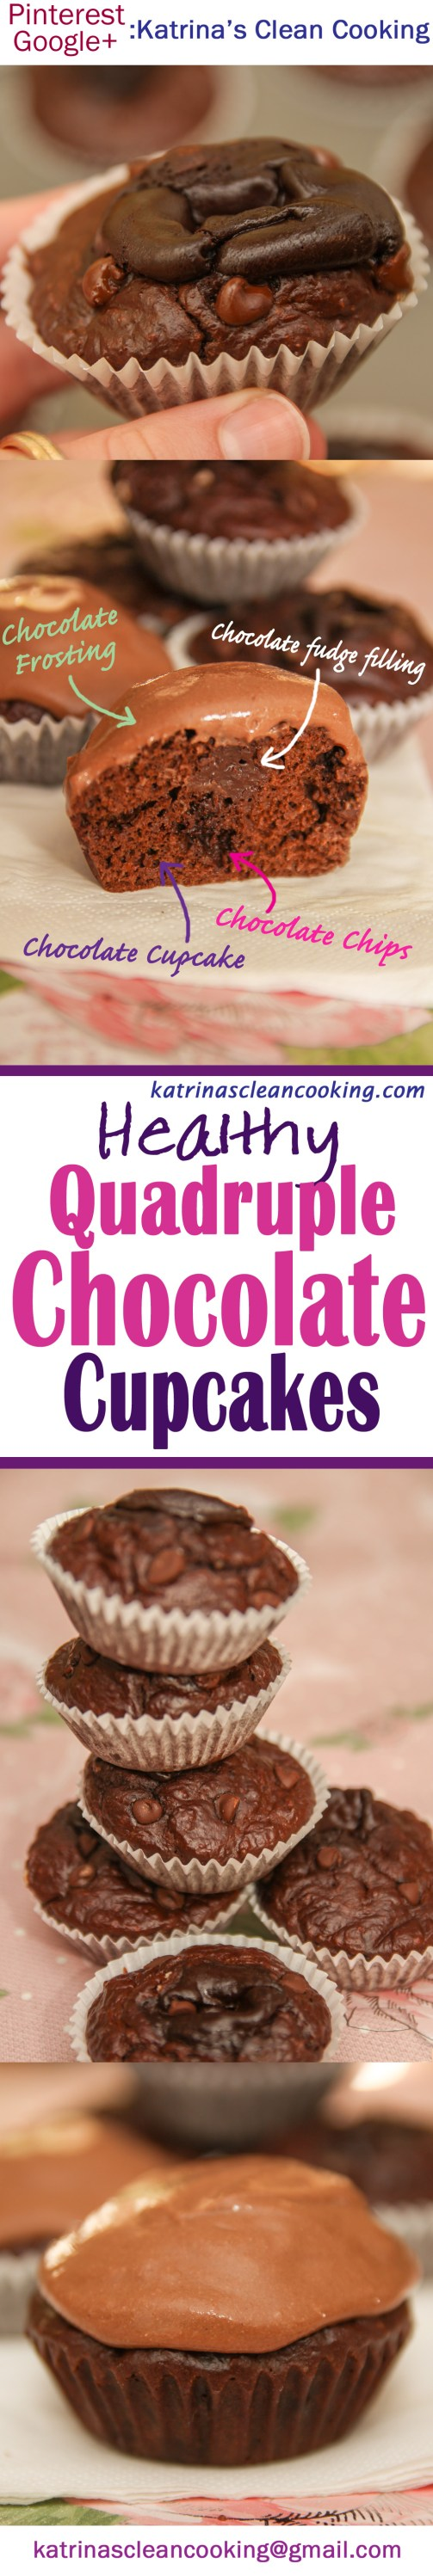 Healthy Quadruple Chocolate Cupcakes #healthy #chocolatecupcakes #sugarfree